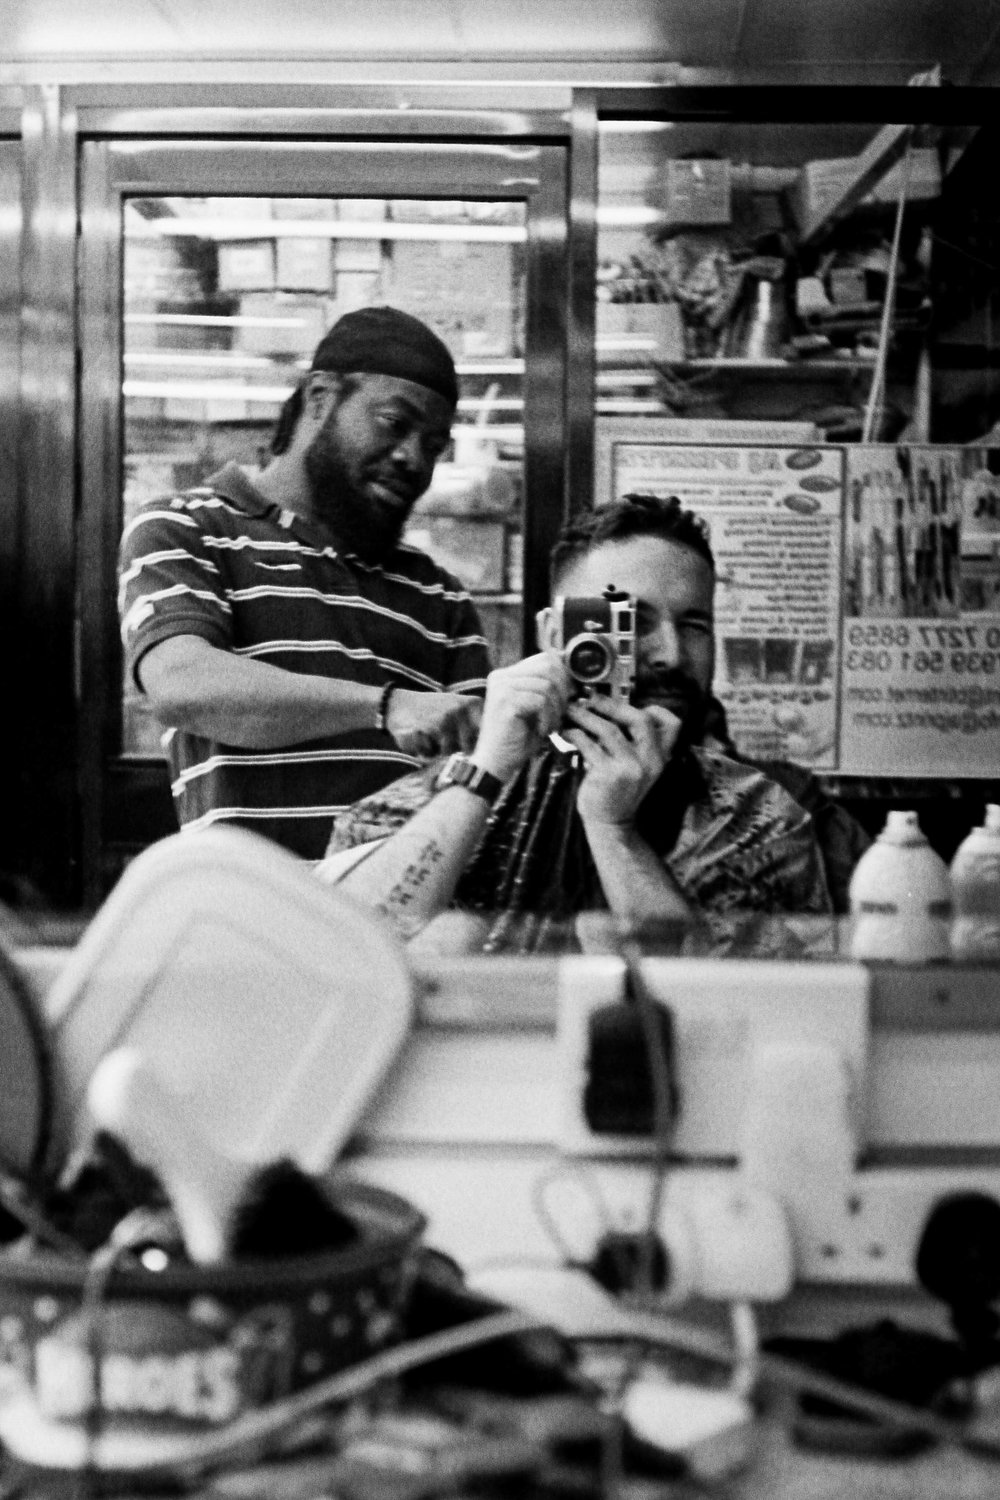 Selfie with barber Mike. Peckham, 2018.